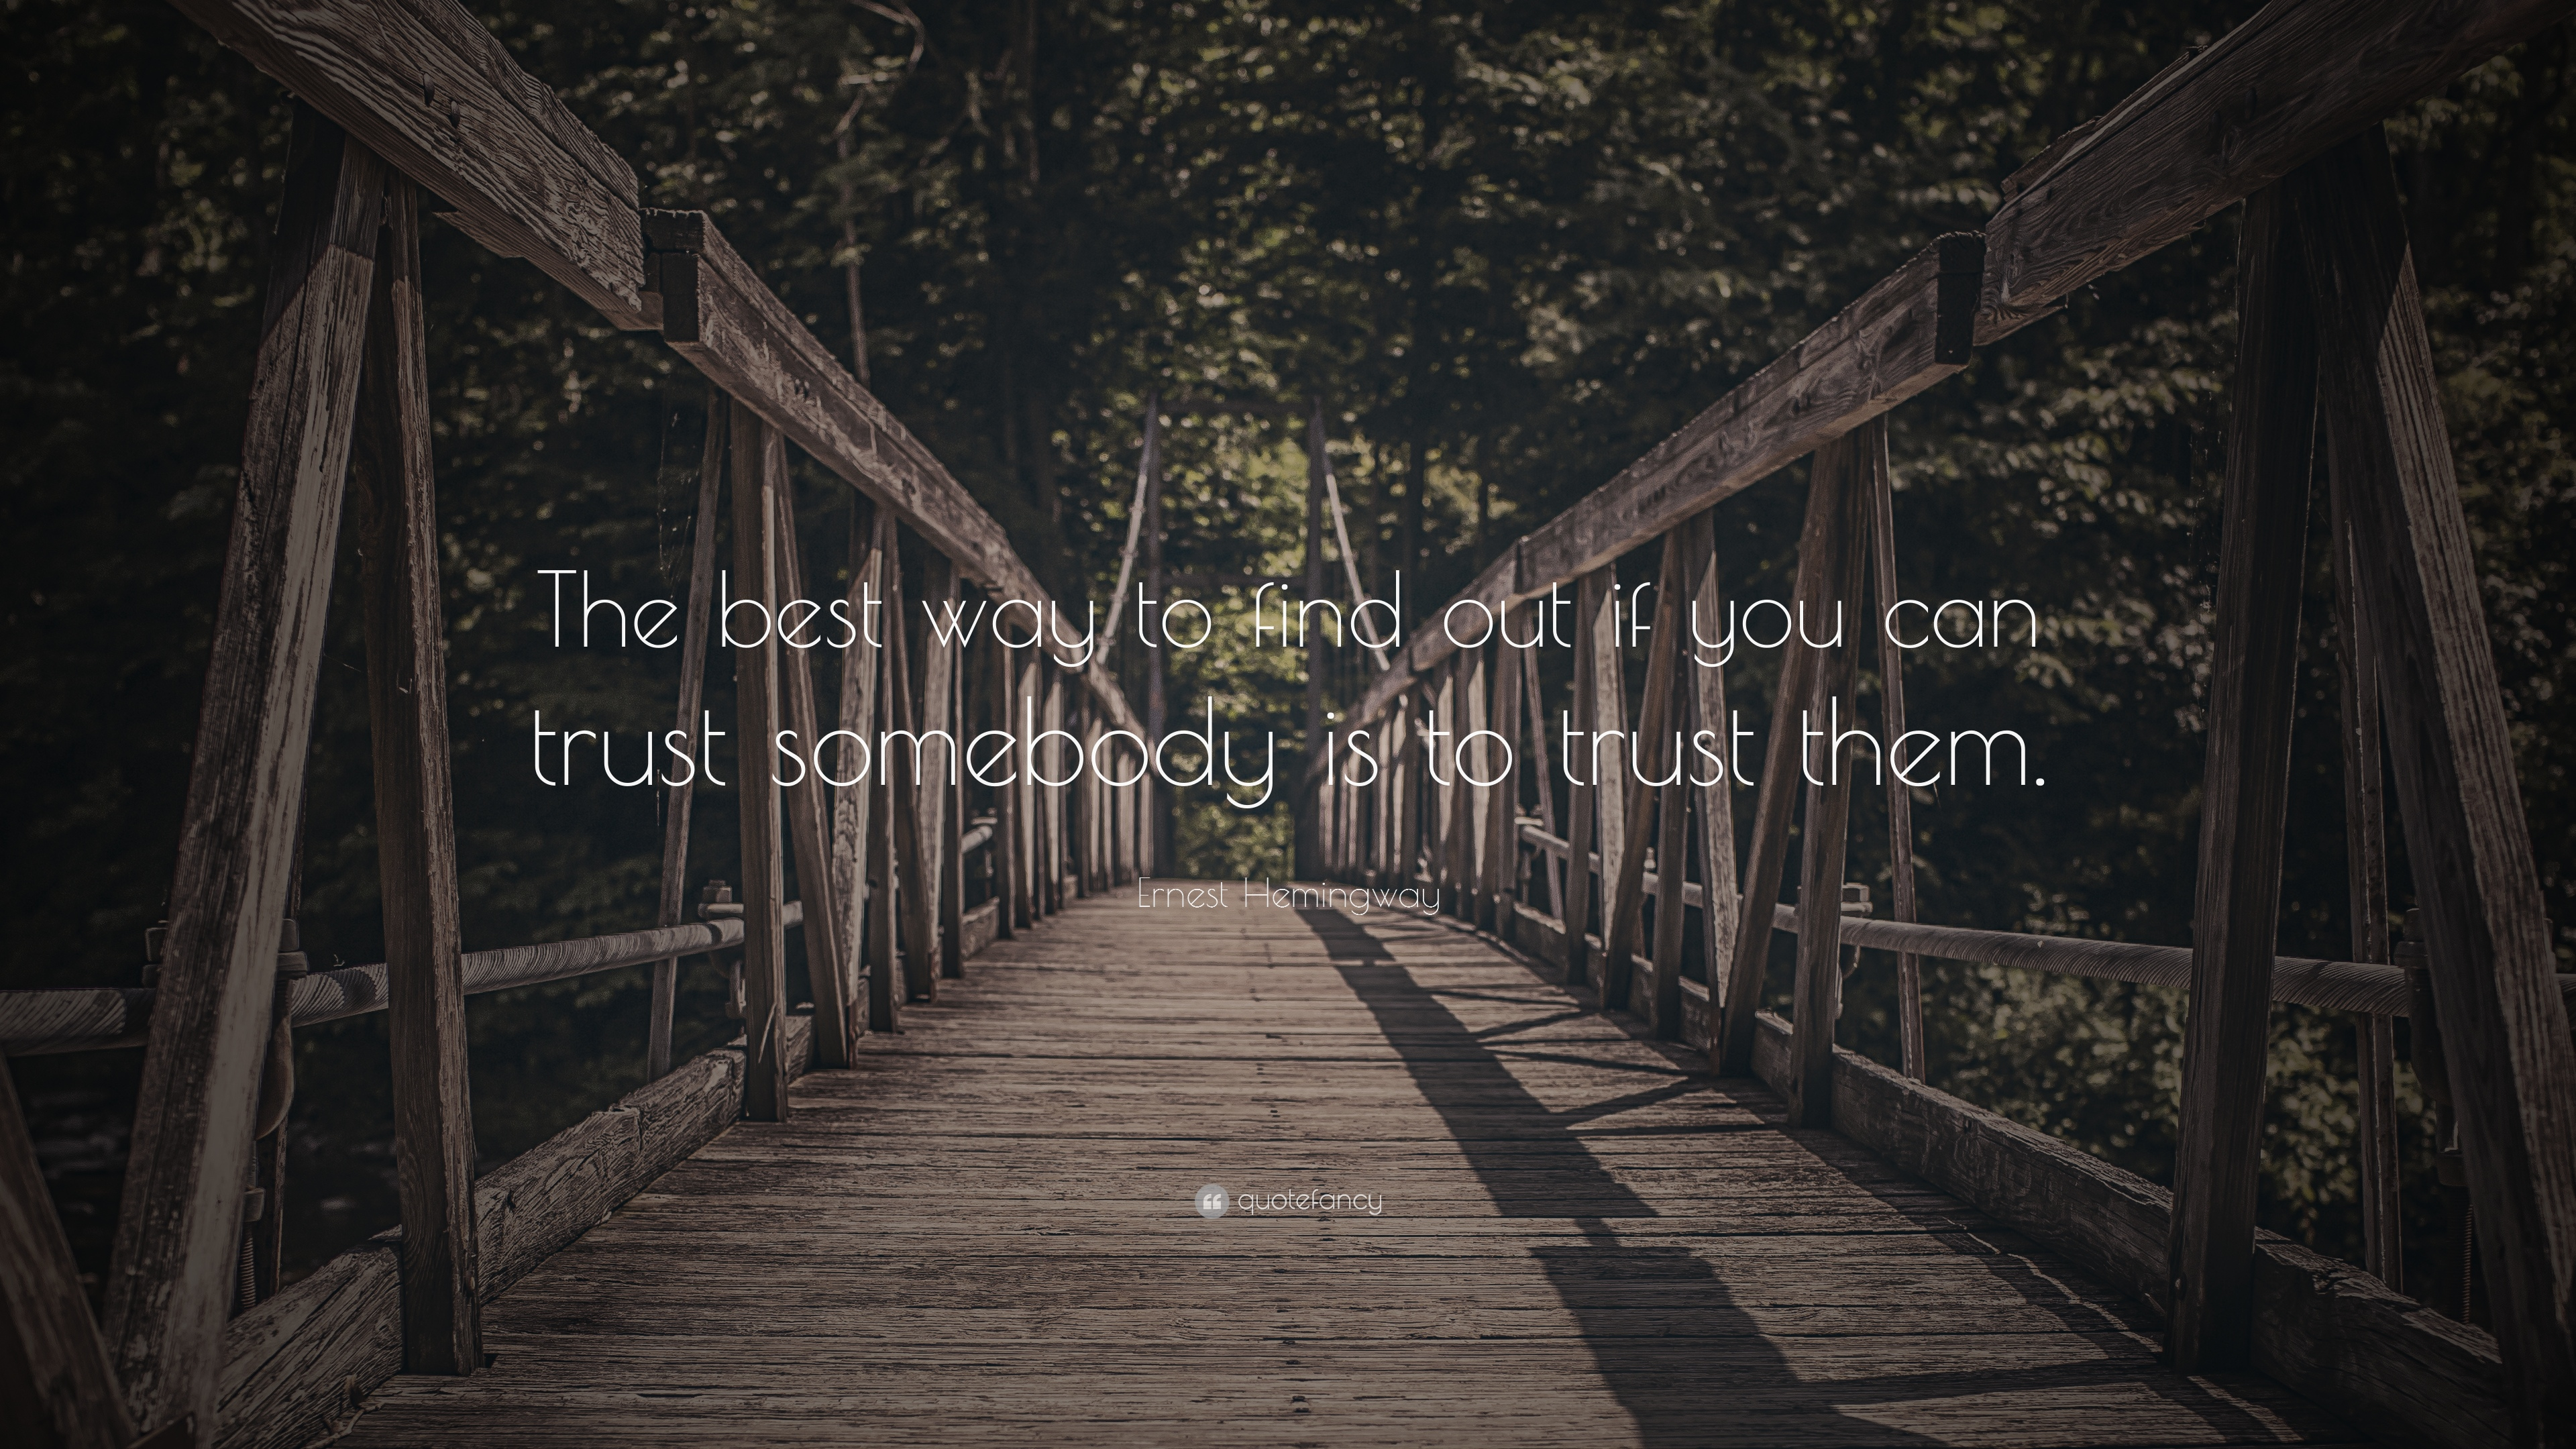 Ernest Hemingway Quote The Best Way To Find Out If You Can Trust